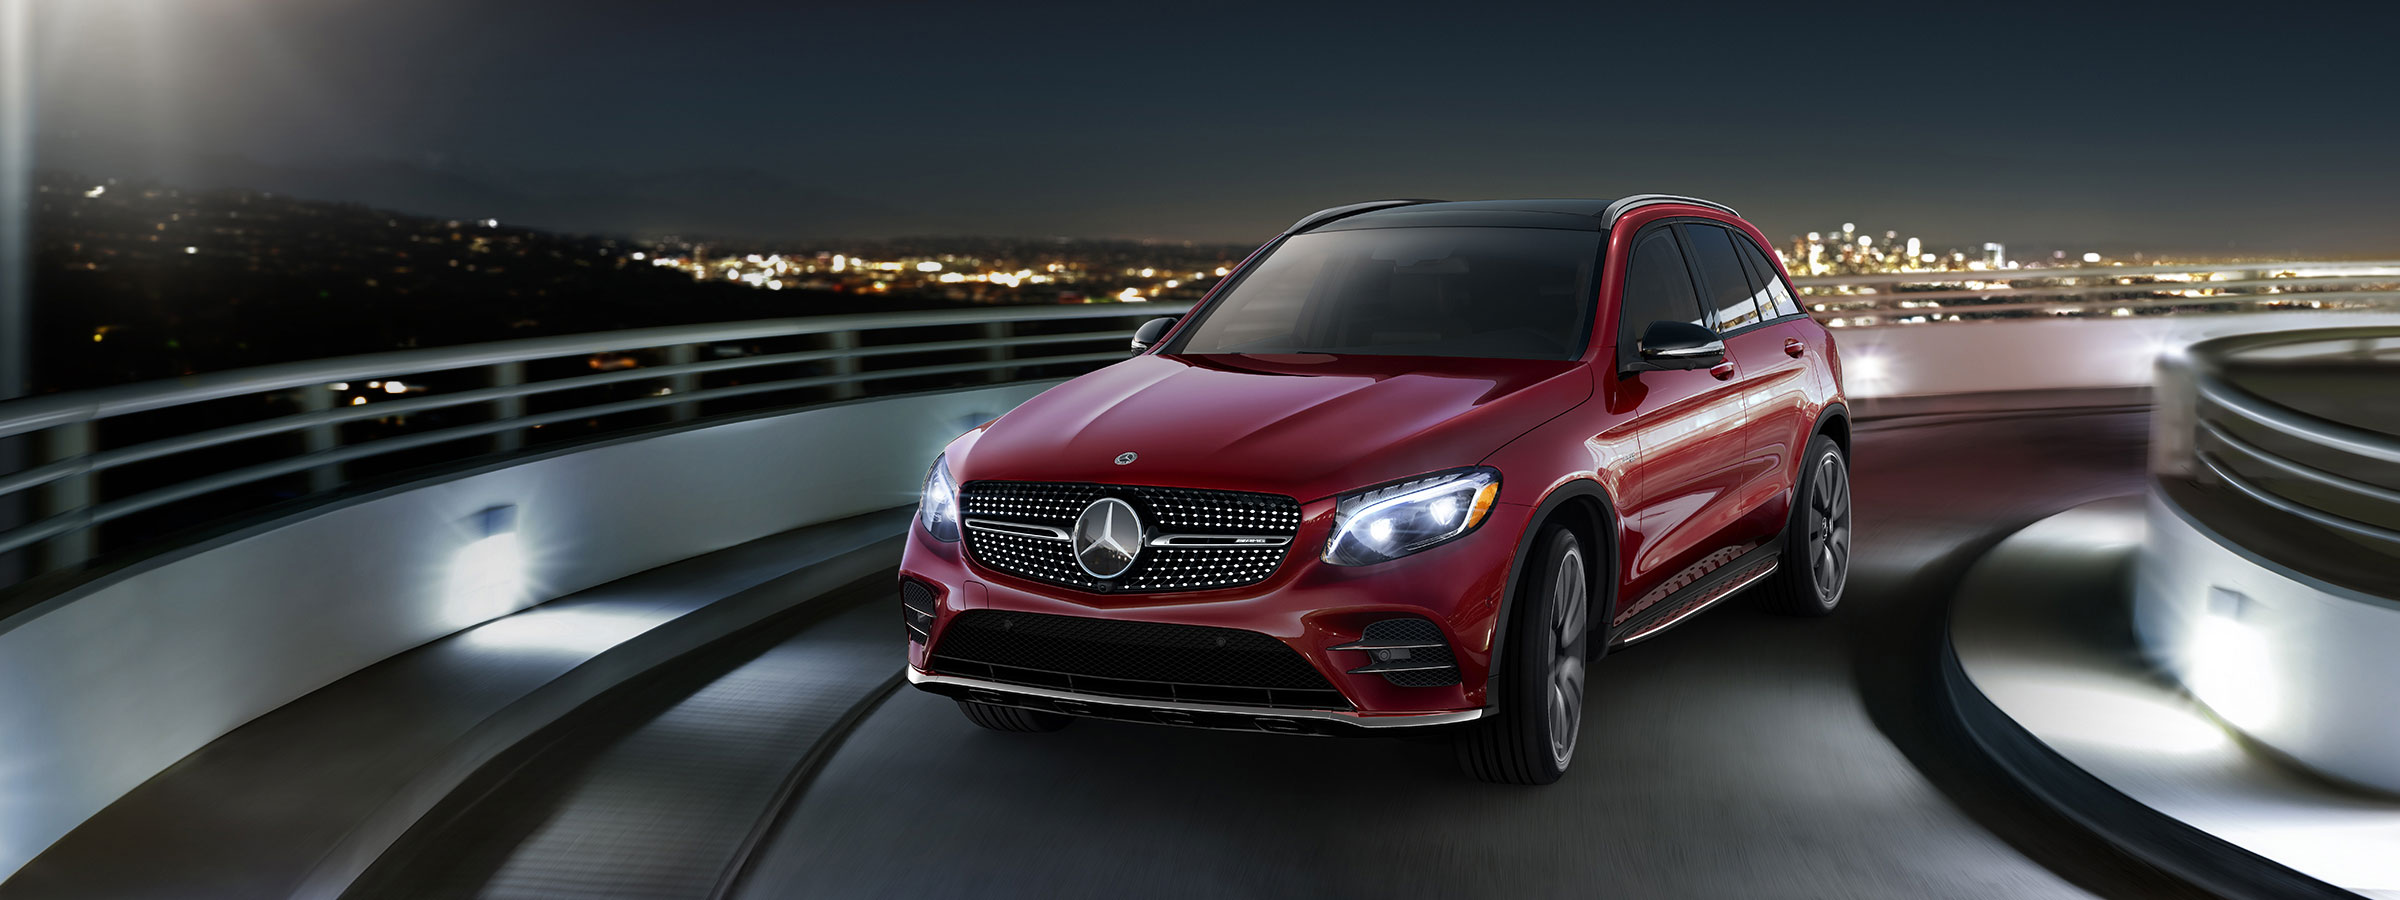 ener mercedes benz futuremodels location class ufi wr hc d force gallery friendly future suv concept g vehicle mercede environmentally model